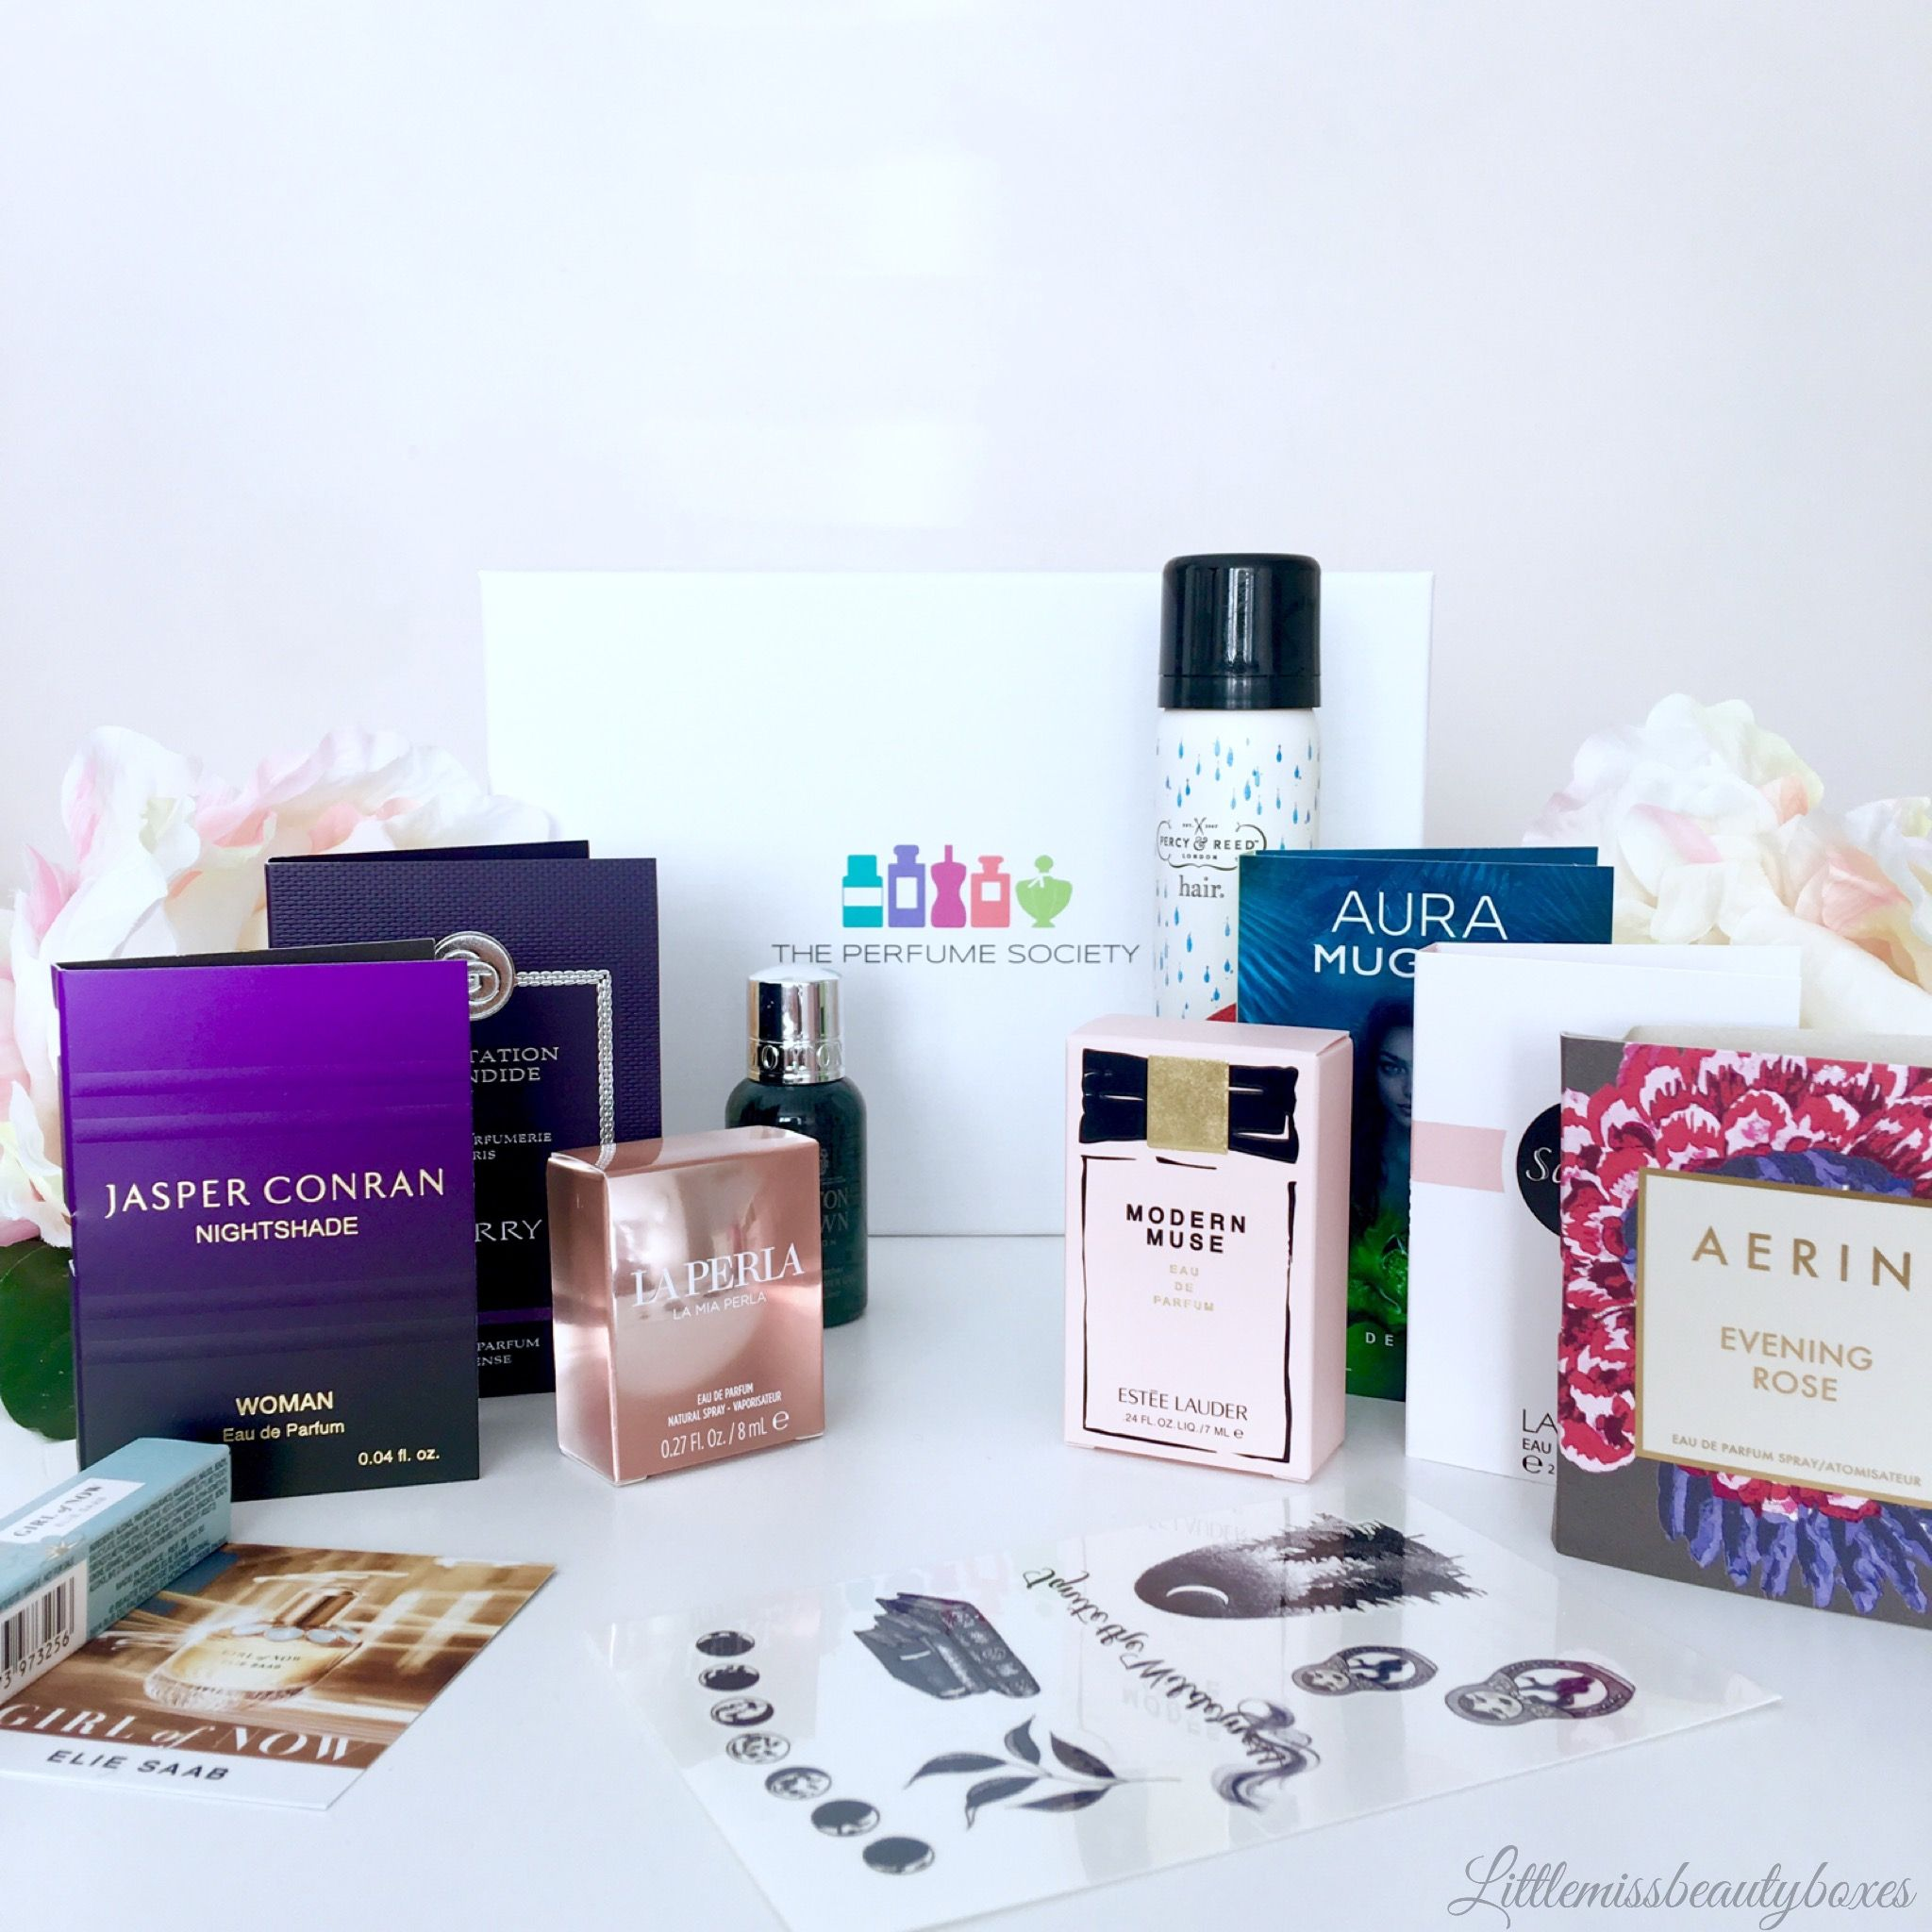 This is @Perfume_Society box which is packed full of full sized perfumes and samples.... Im loving it so much 😍